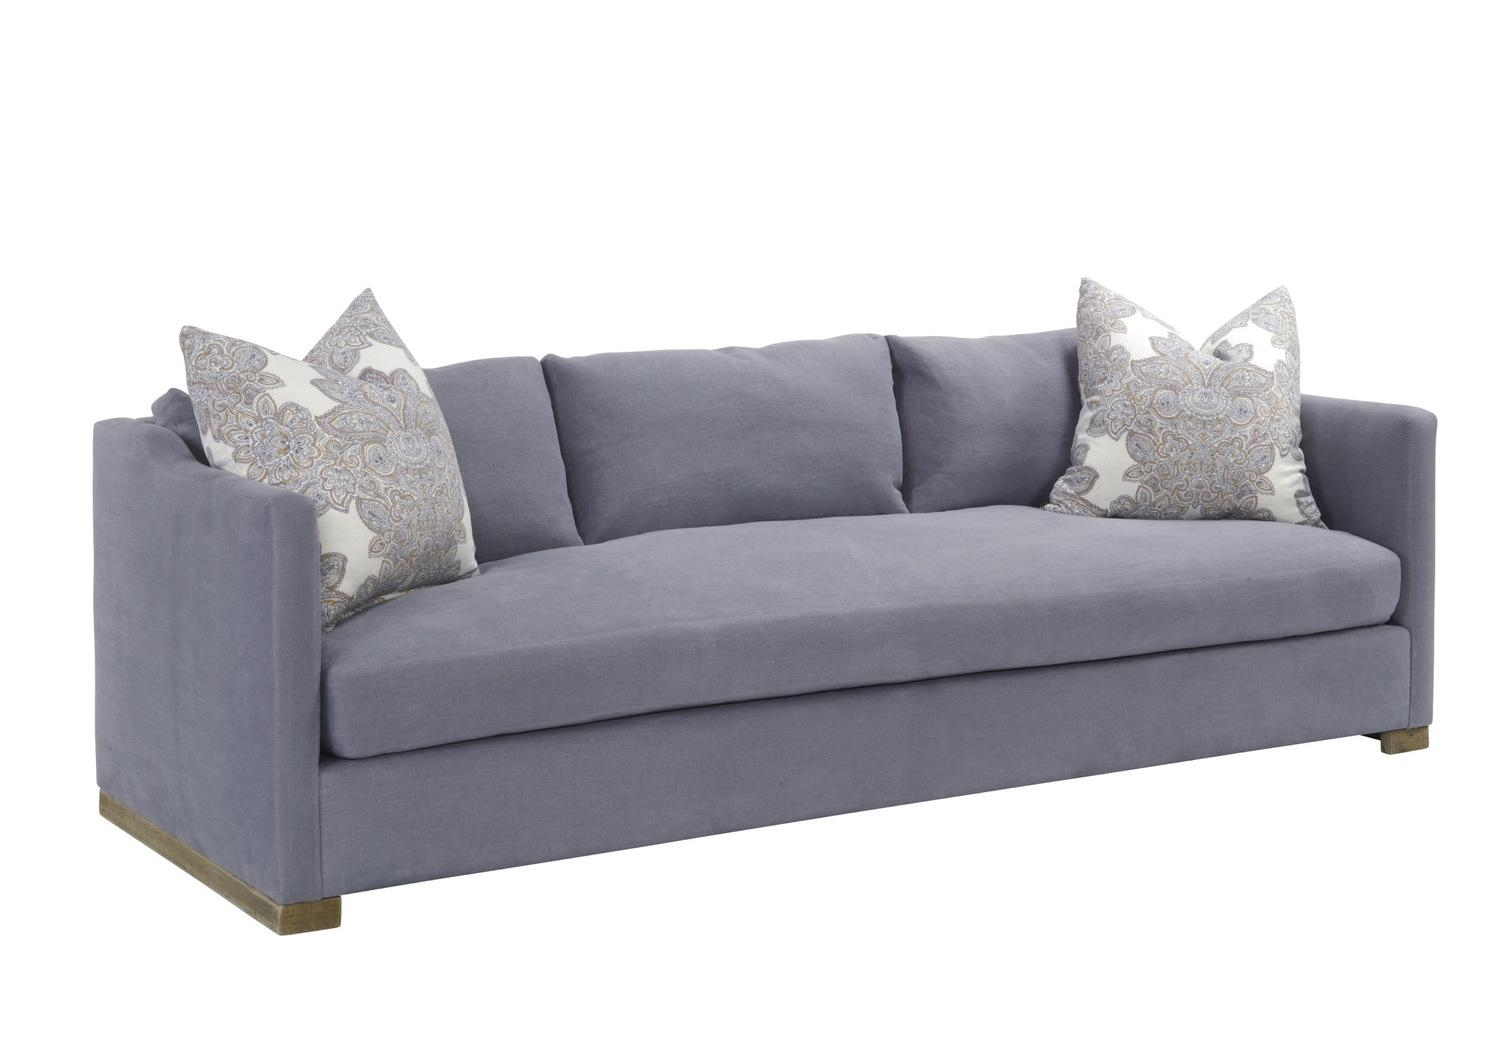 Sofas: Carlisle Furniture Collection | Carlyle Chair | Carlyle Sofa With Regard To Carlyle Sofa Beds (Image 17 of 20)